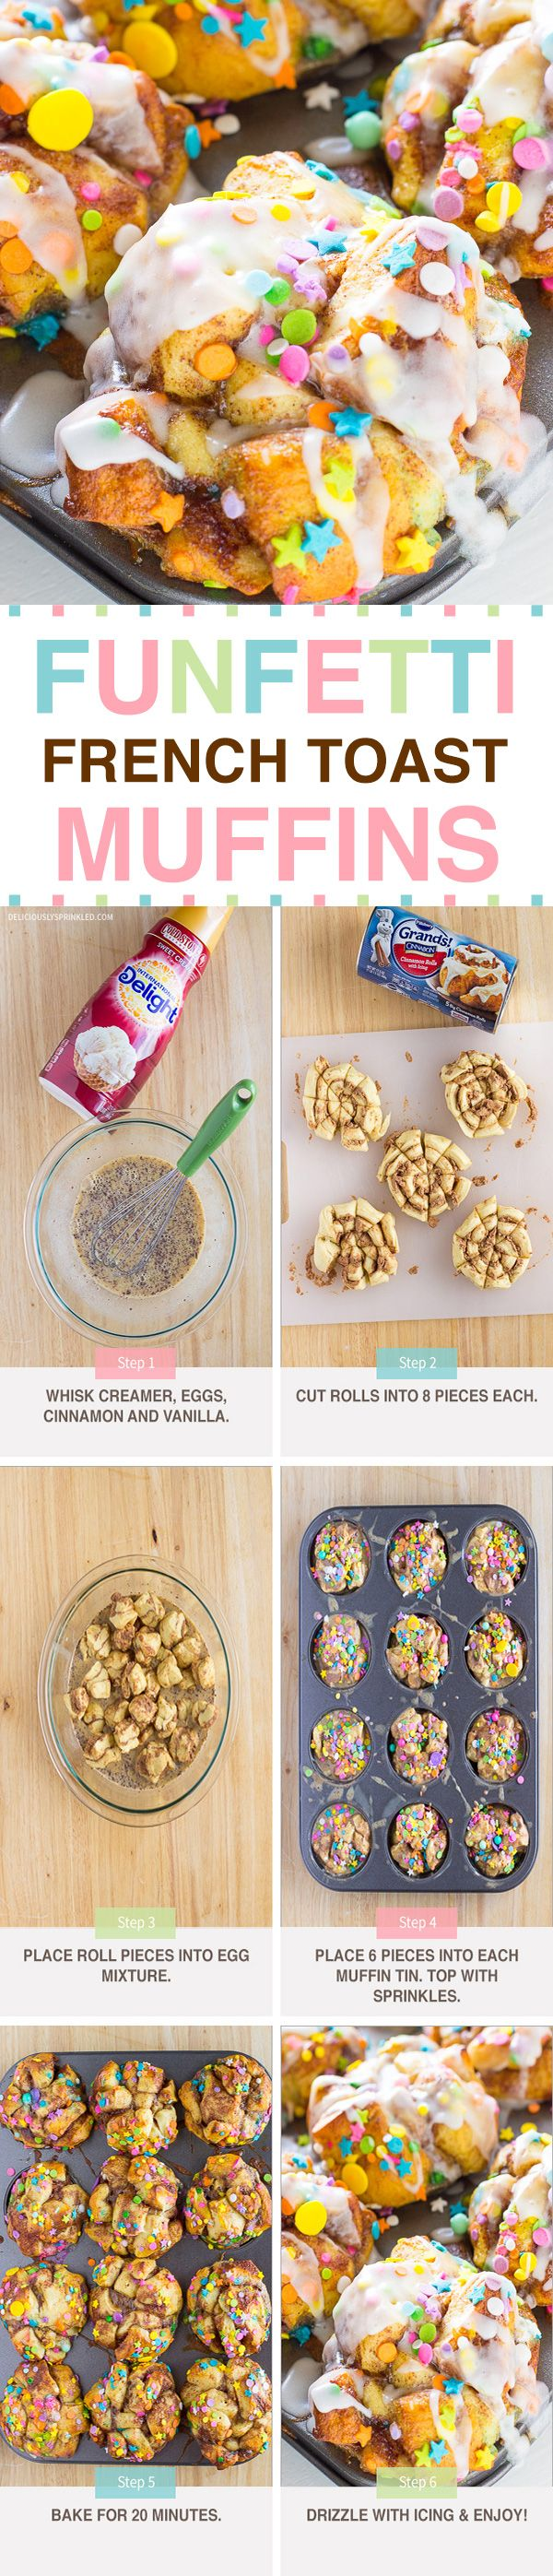 Easy To Make Funfetti French Toast Muffins!